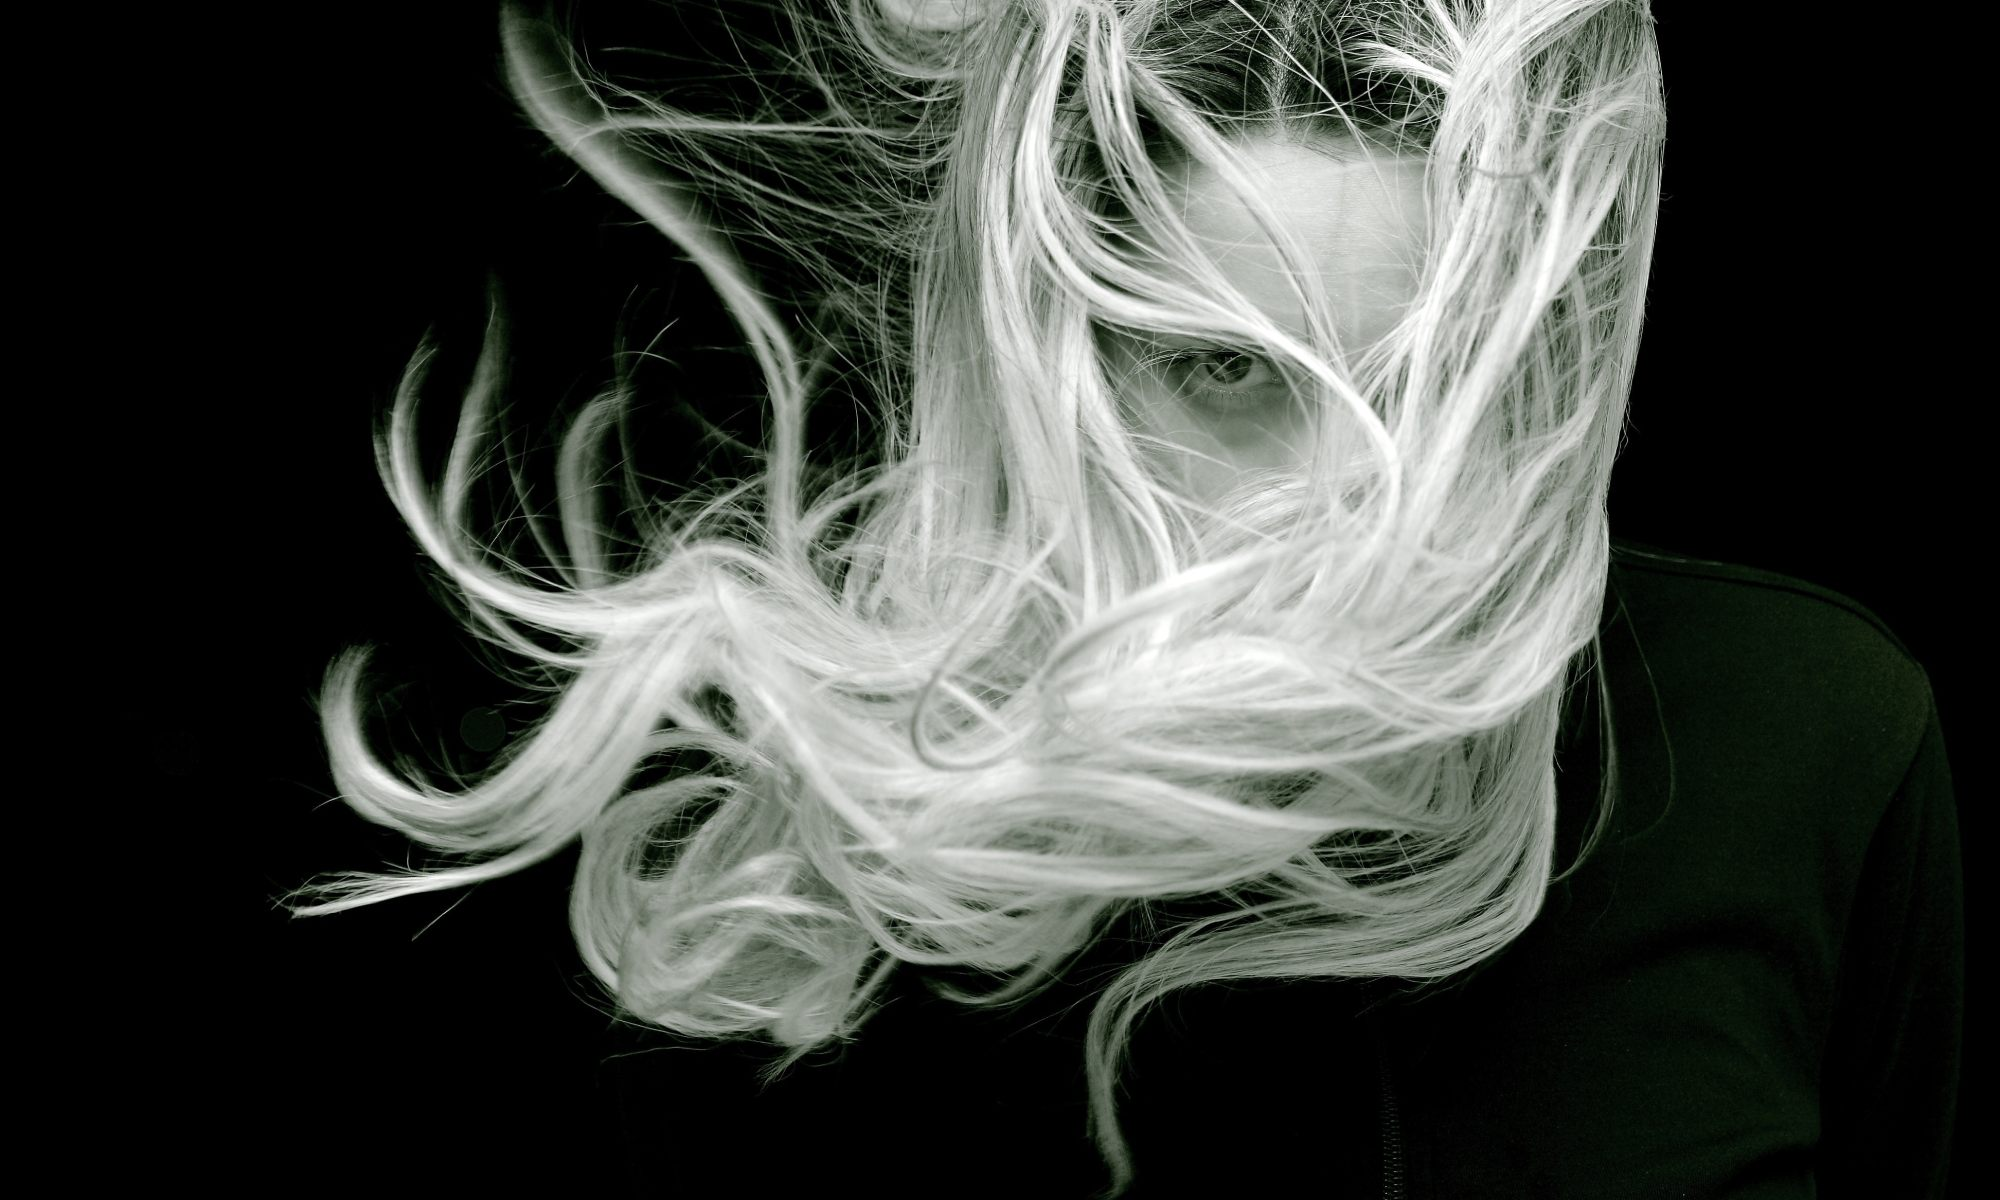 Fusion opening hours black and white portrait of lady with blonde hair being blown